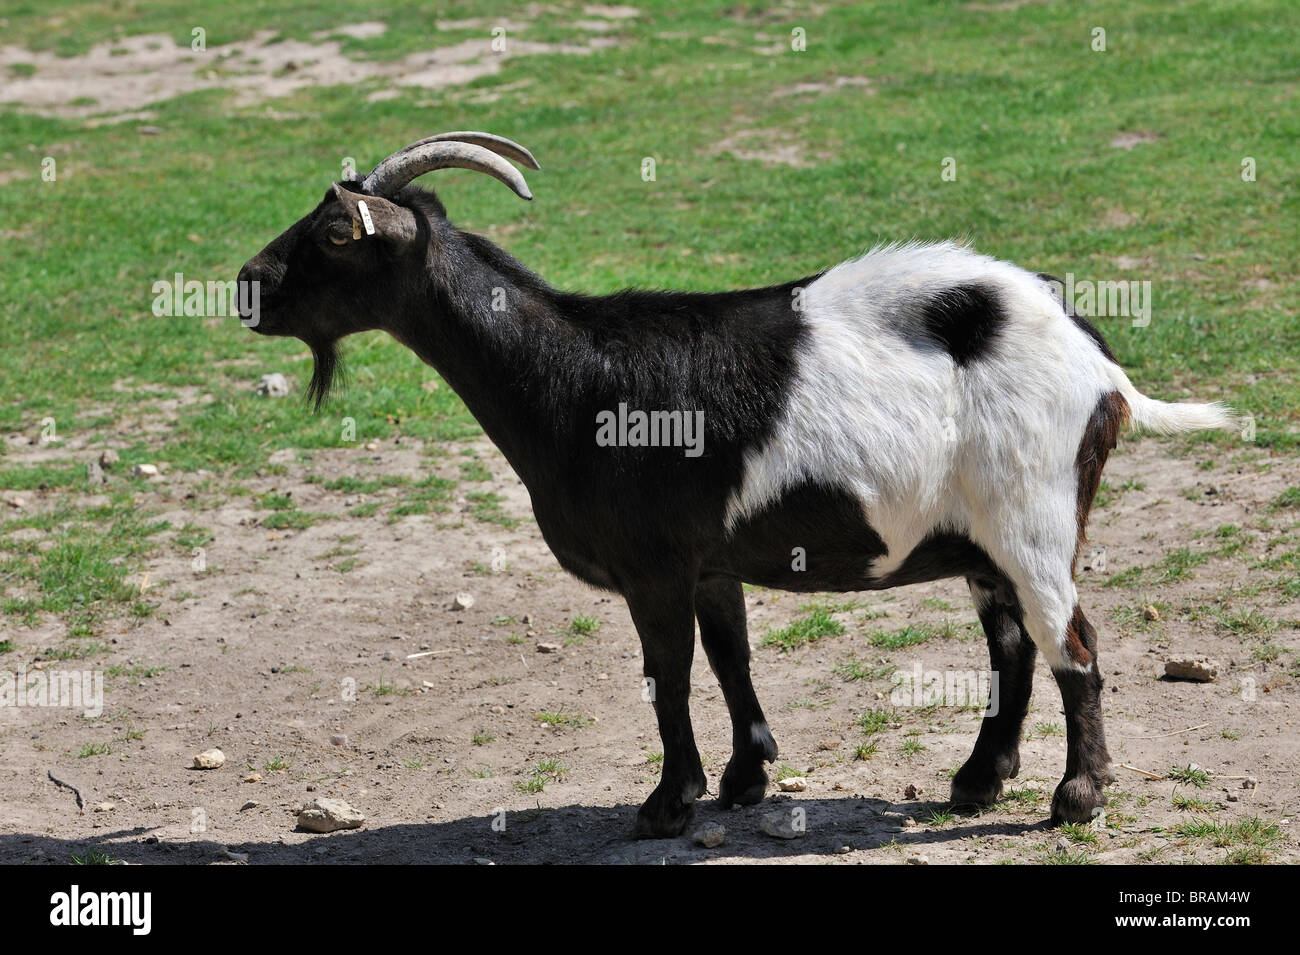 Black and white Pygmy goat (Capra hircus domestica) native to West Africa - Stock Image